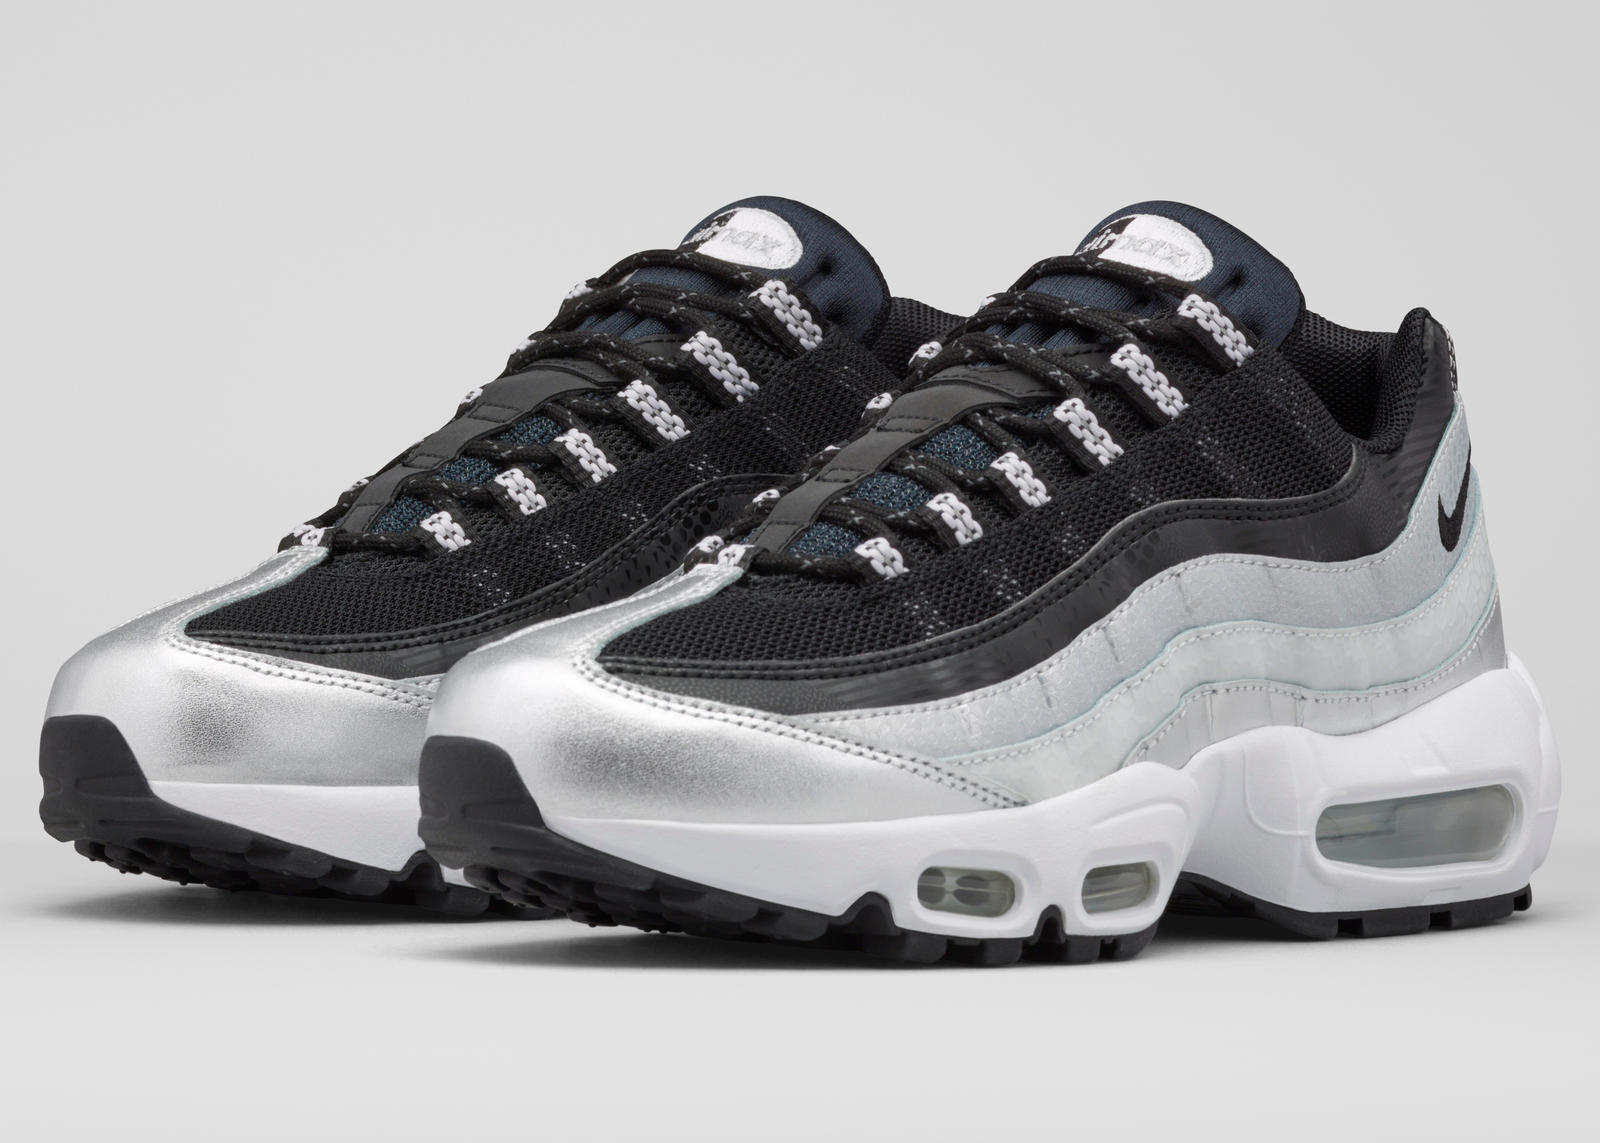 best service a3635 16c73 Already Platinum: The Air Max 95's 20th Anniversary Style ...